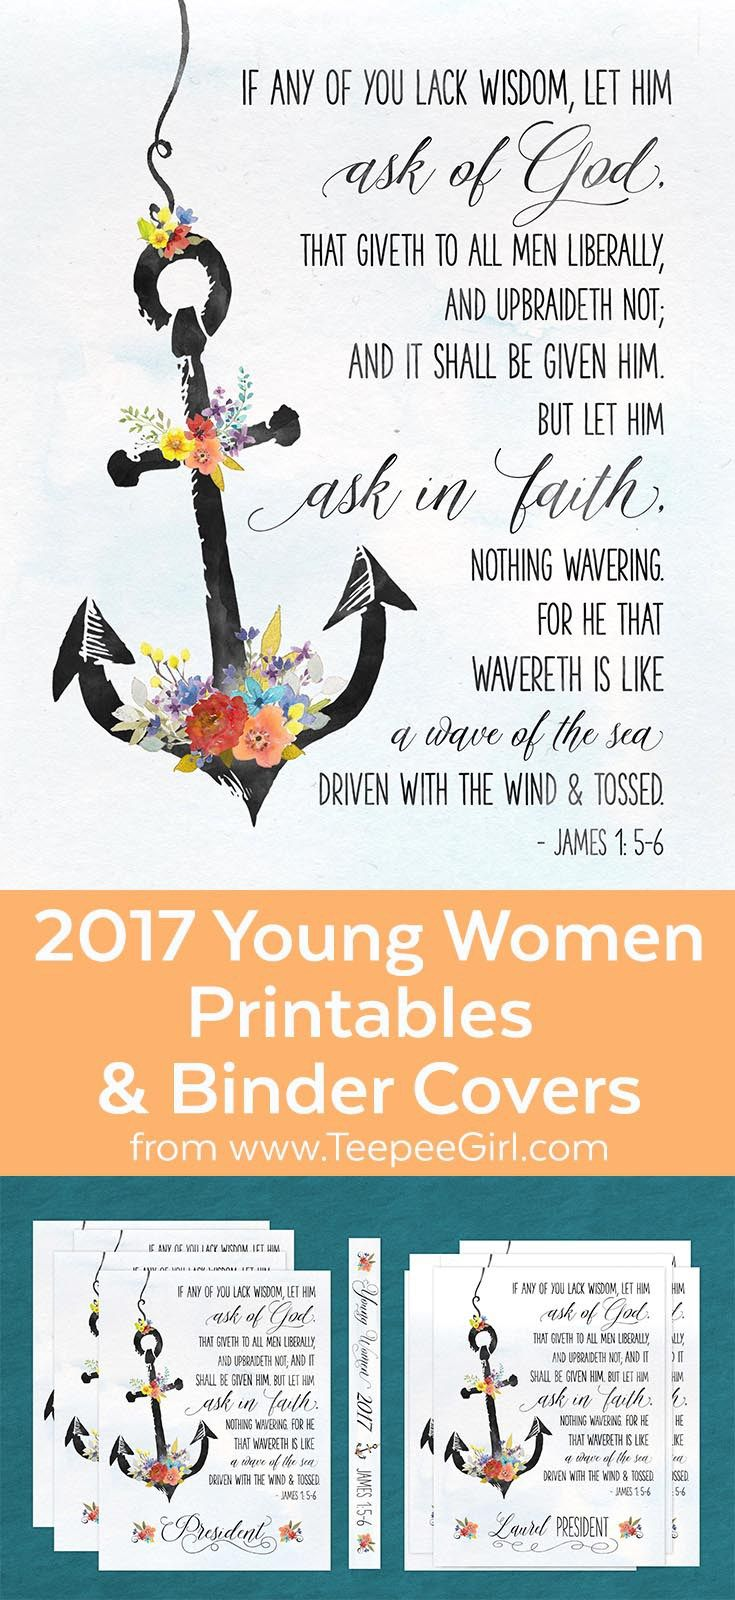 Poster design for class 5 - Free 2017 Young Women Printables Binder Covers